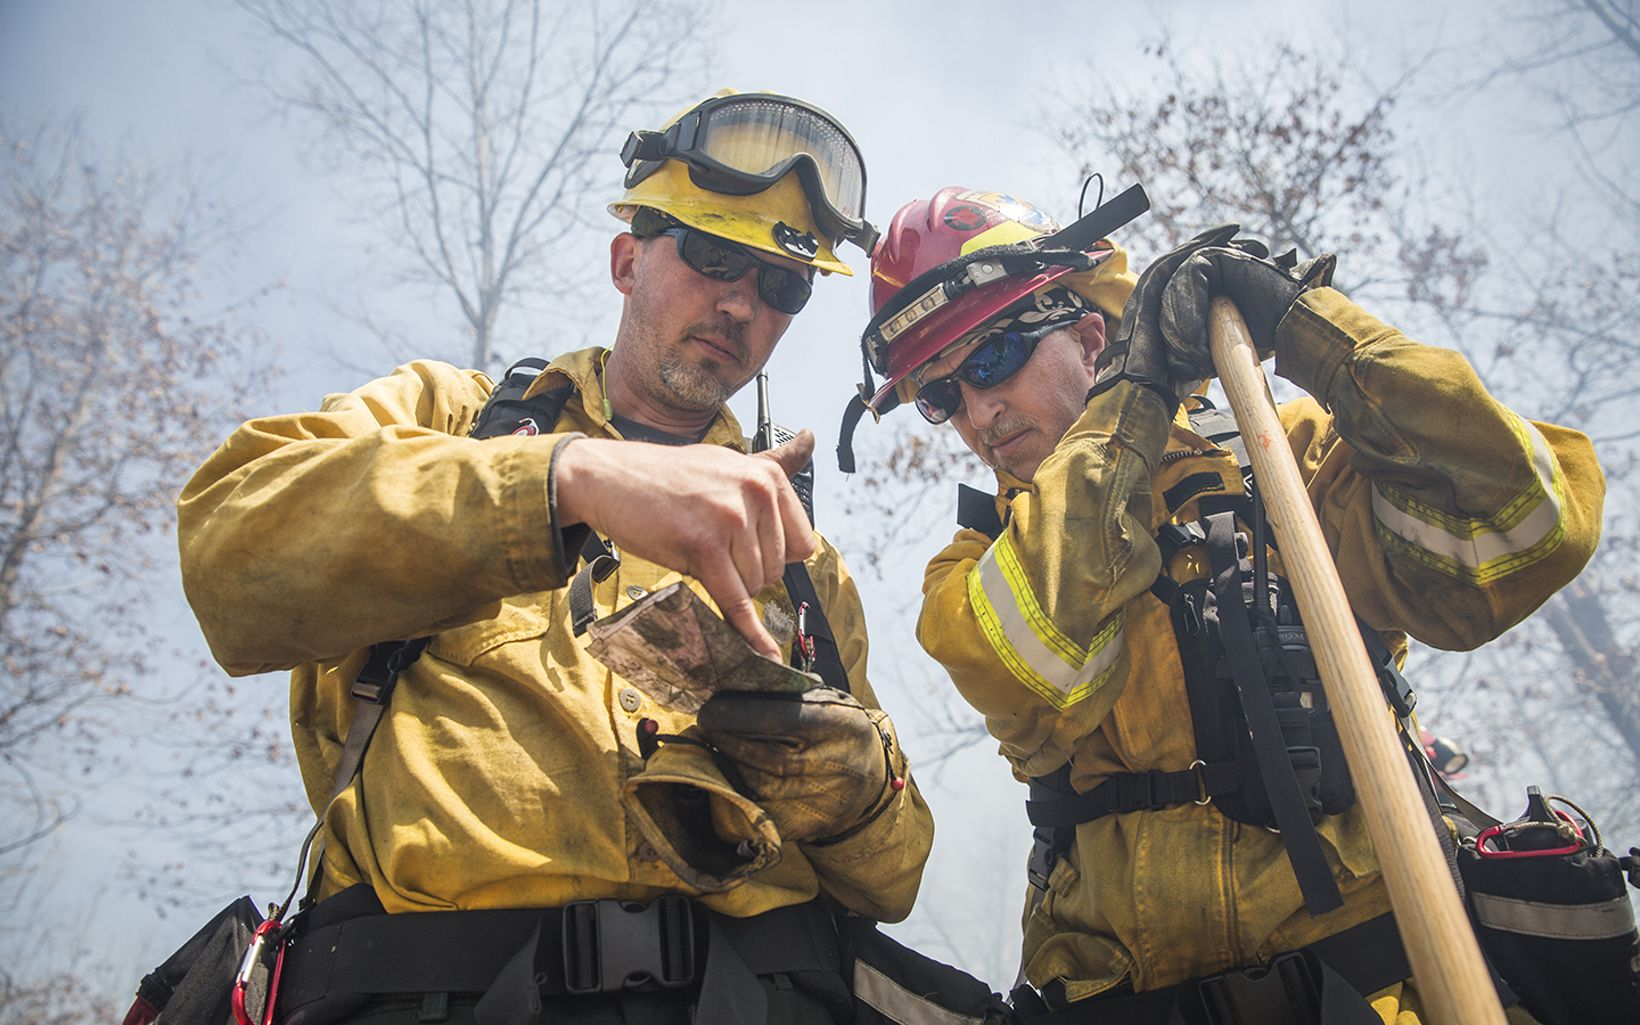 Two fire personnel look at a map.